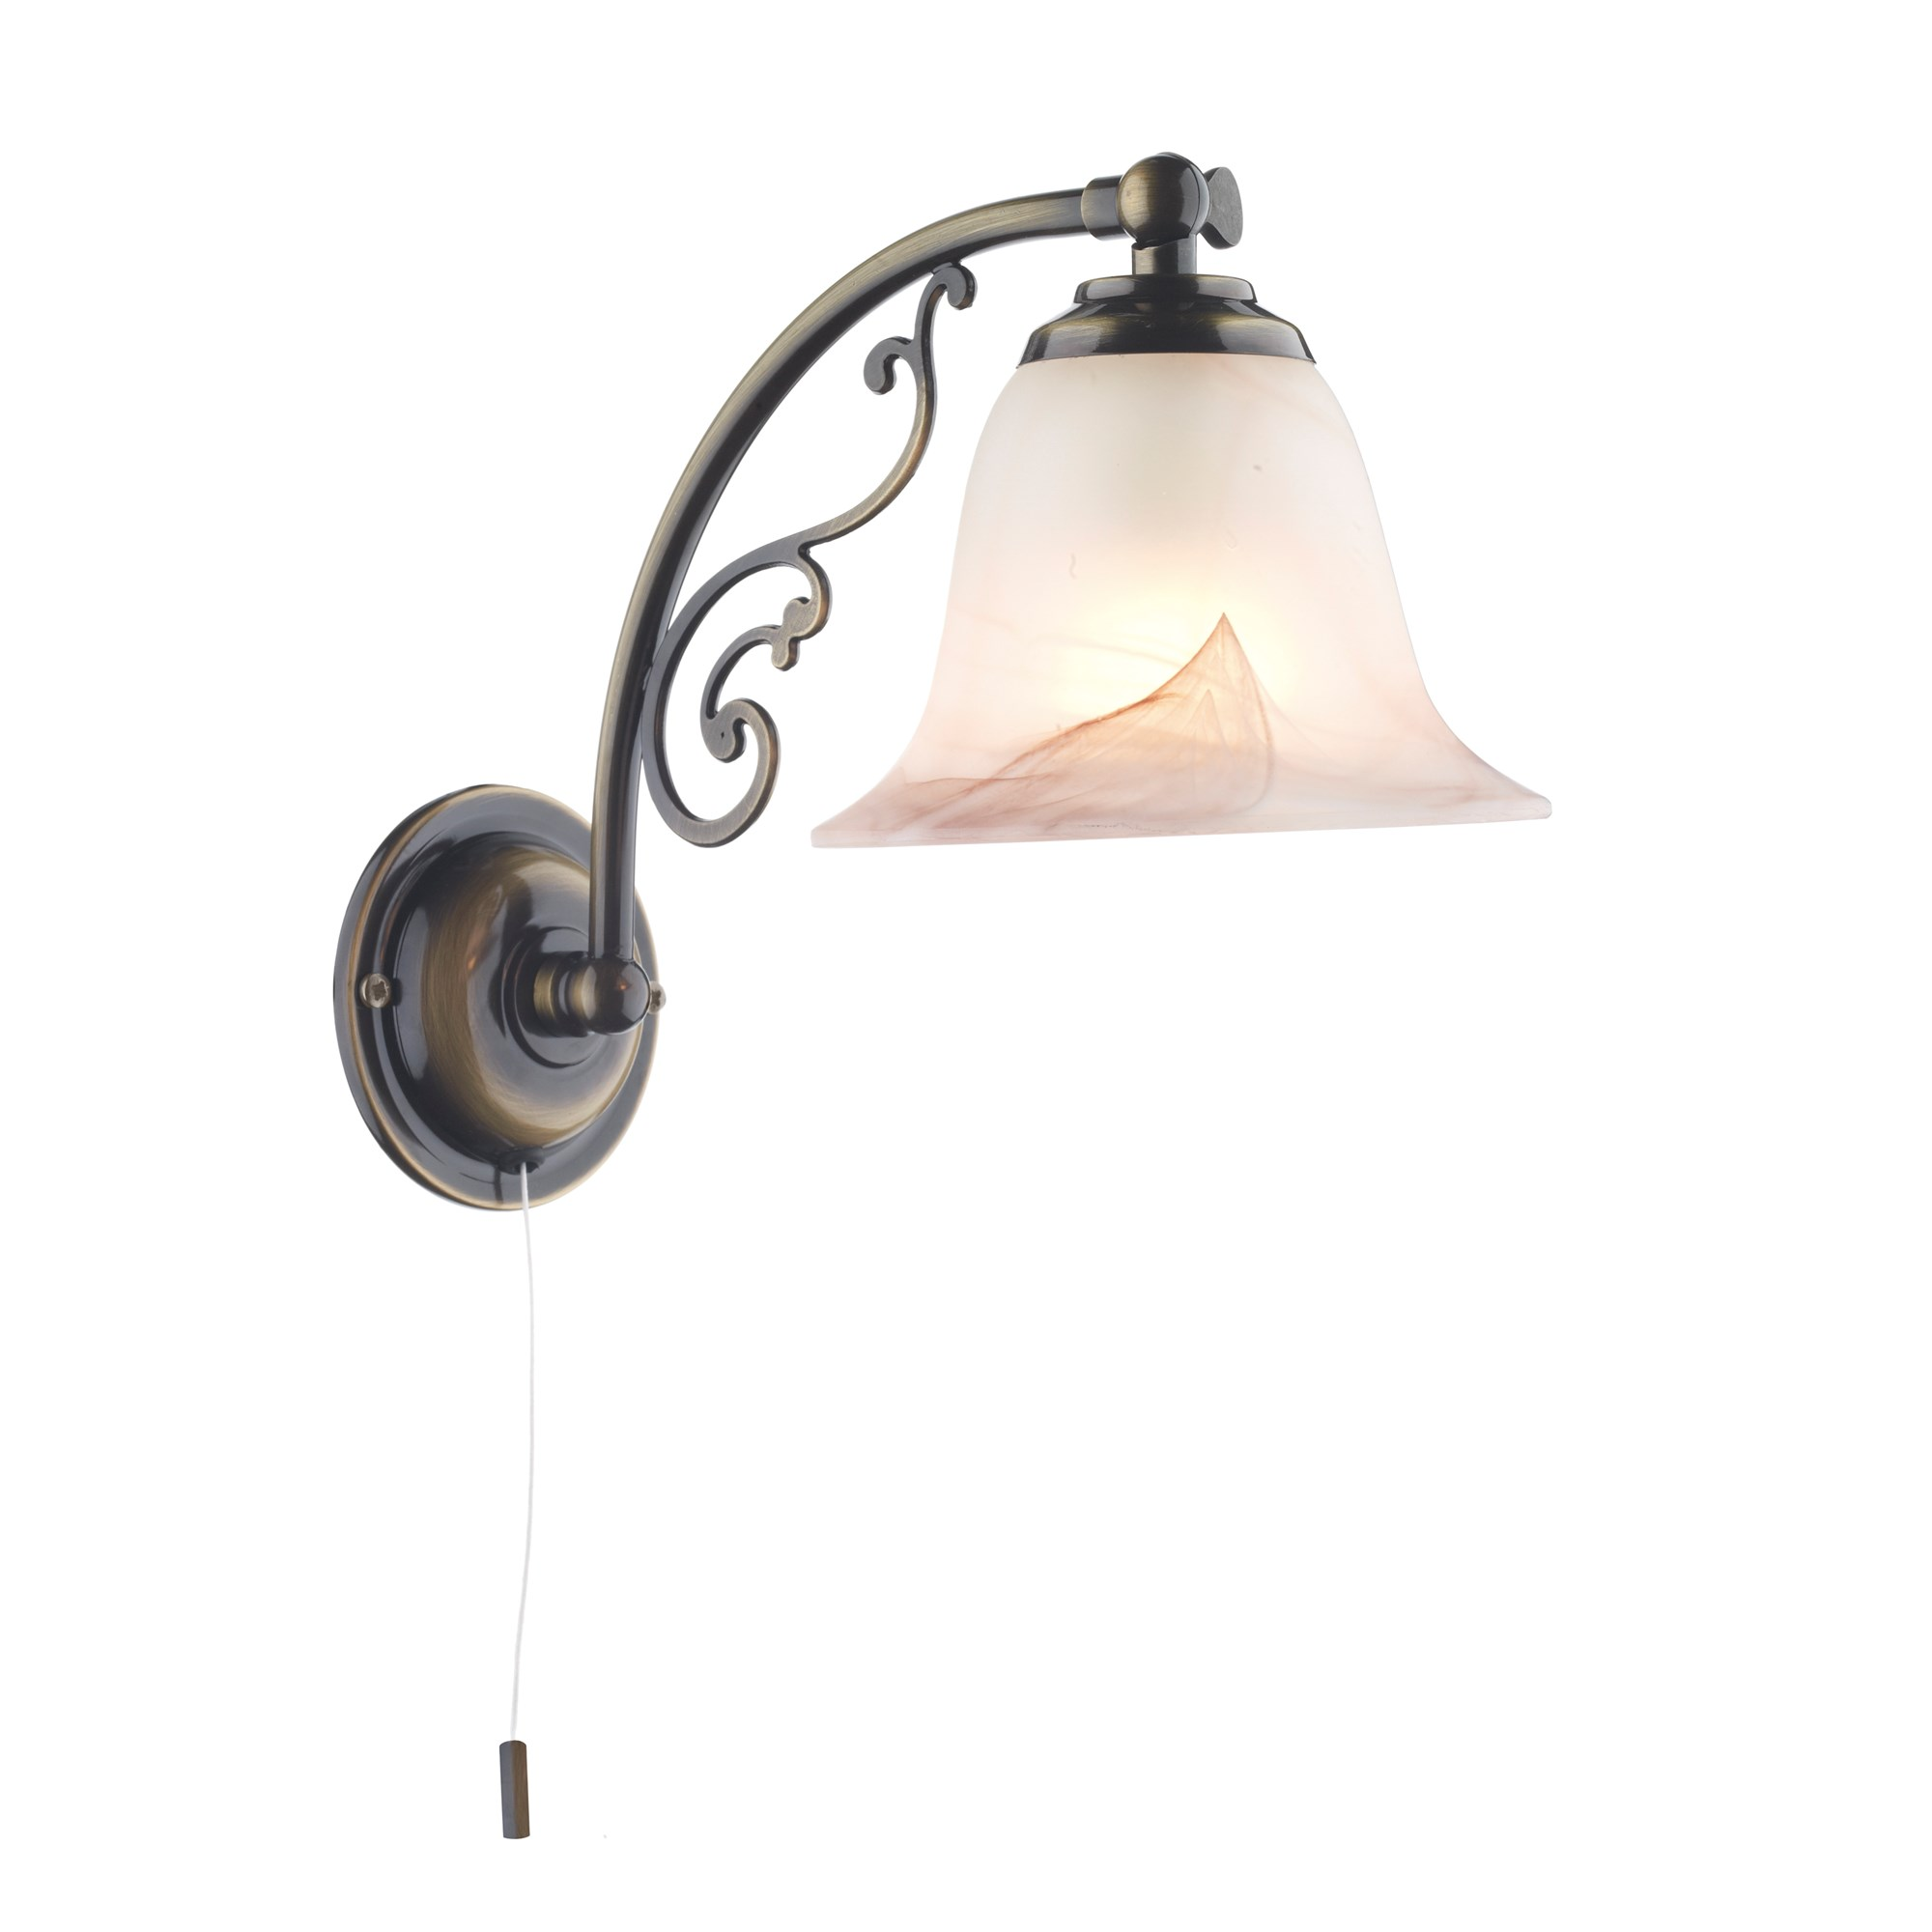 Mistley With Decorative Up Down Wall Light Pull Cord Ant Bra